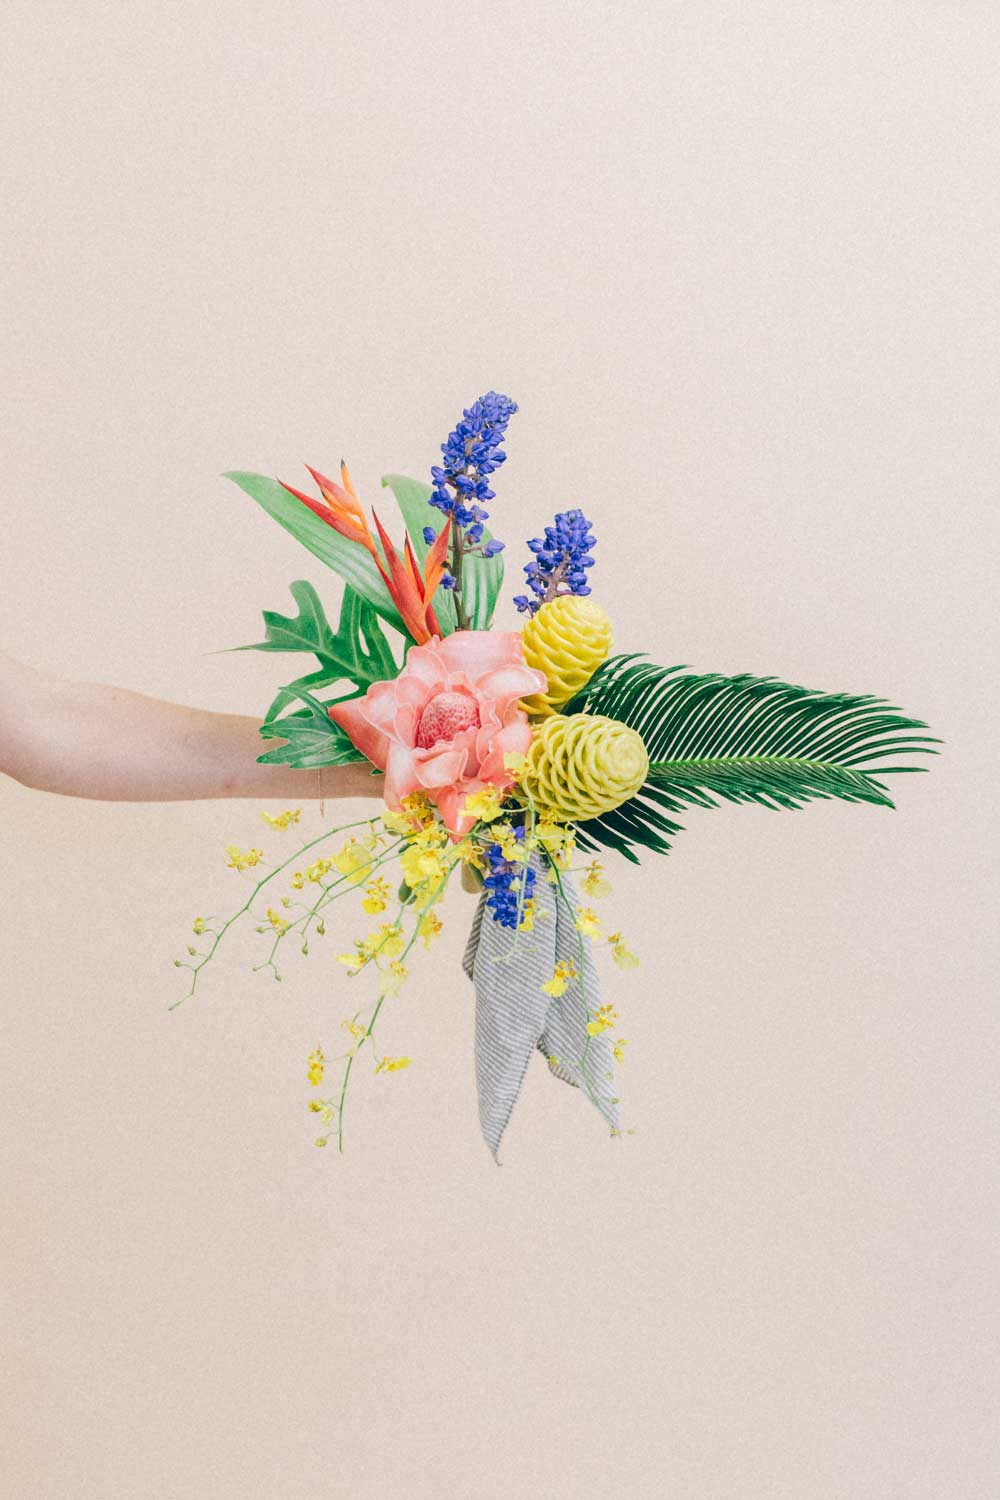 A hand holding a colorful flower bouquet